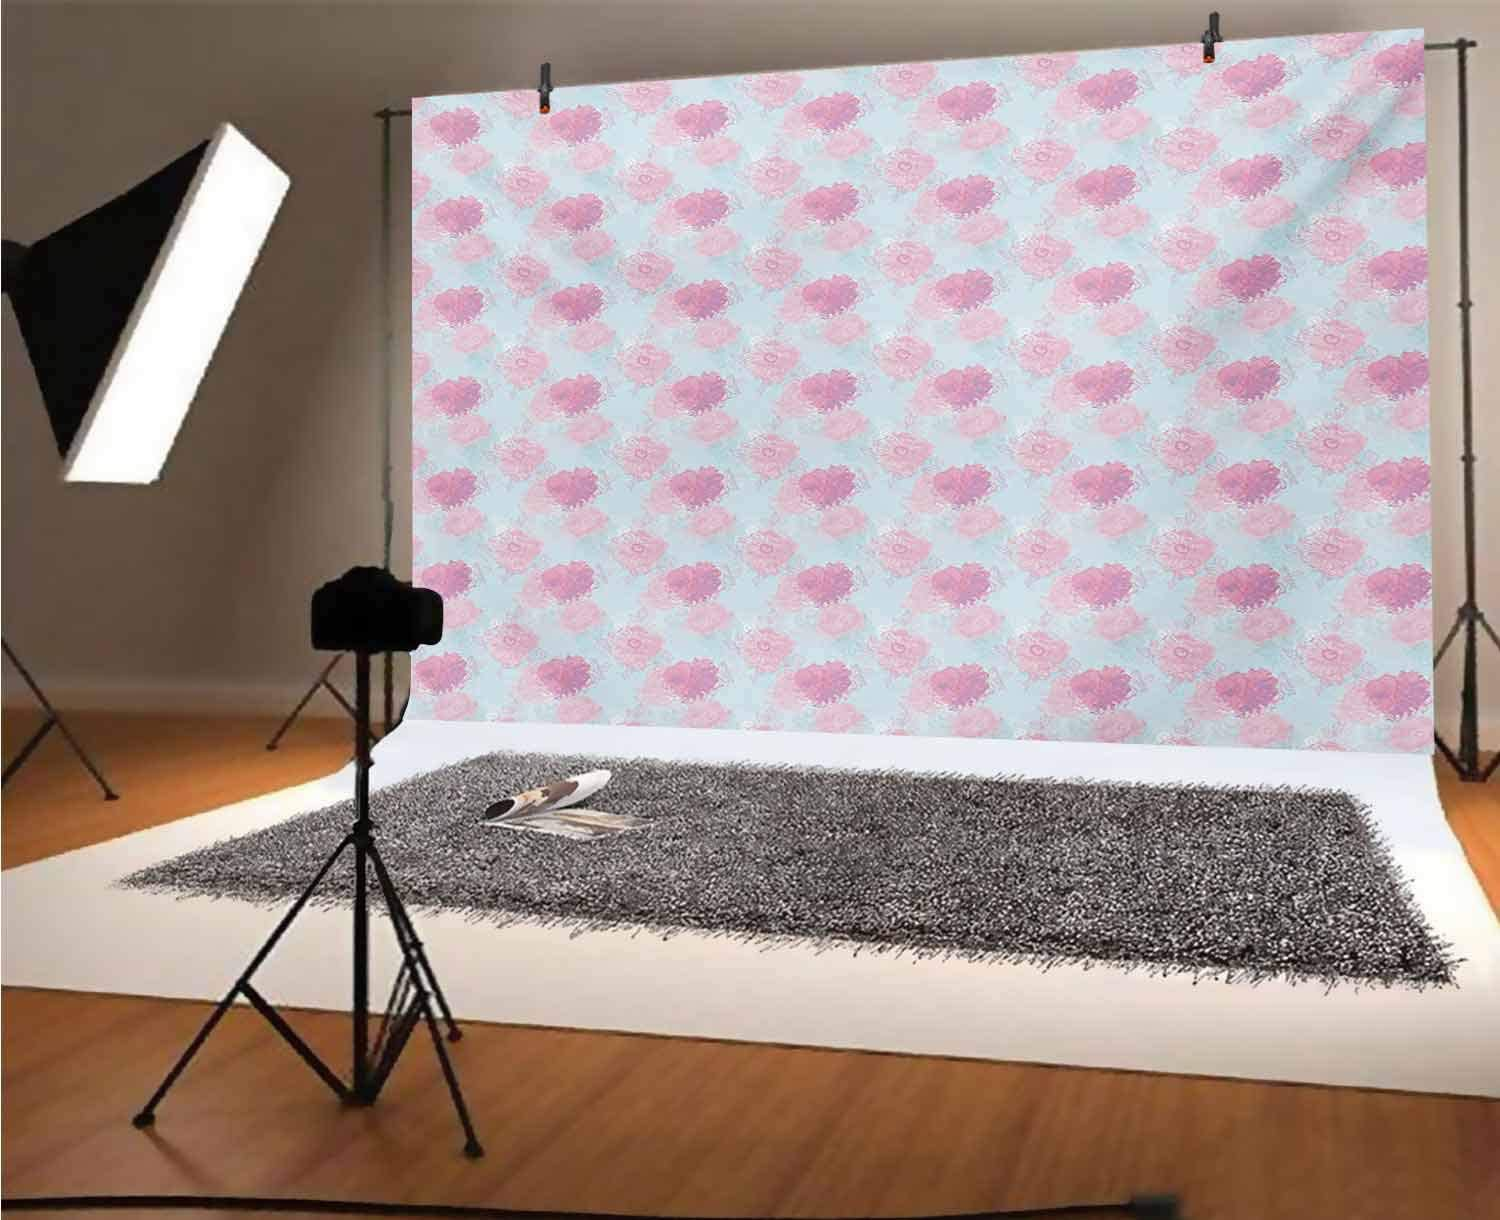 Peach 10x6.5 FT Vinyl Photo Backdrops,Rose Flowers Leaves Buds Natural Themed Image Soft Toned Abstract Background Background for Child Baby Shower Photo Studio Prop Photobooth Photoshoot